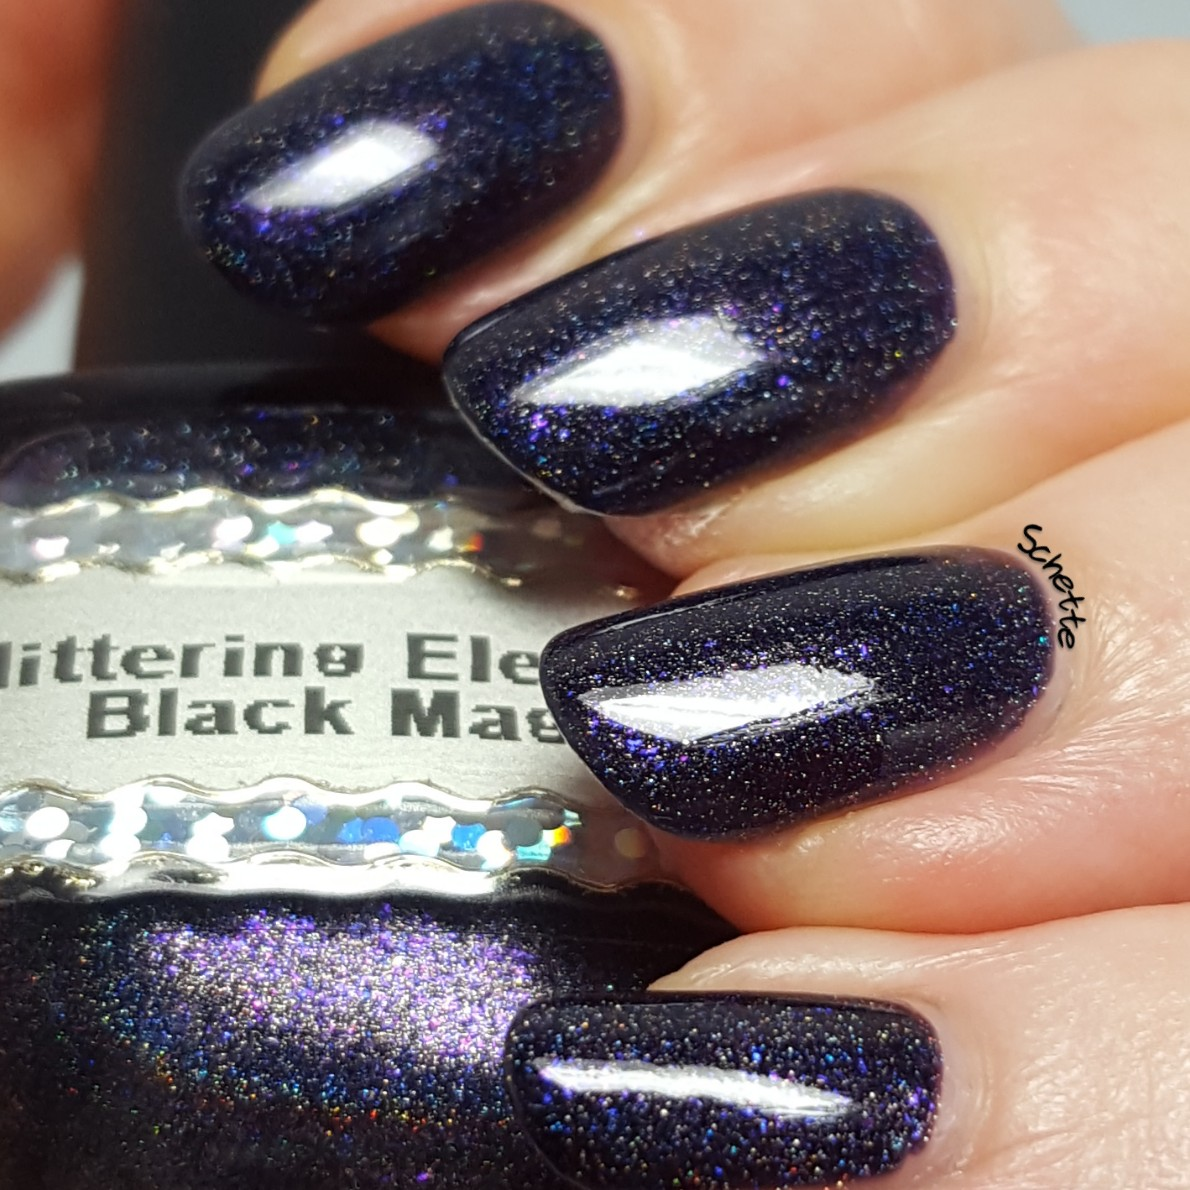 Glittering Elements - Black Magic